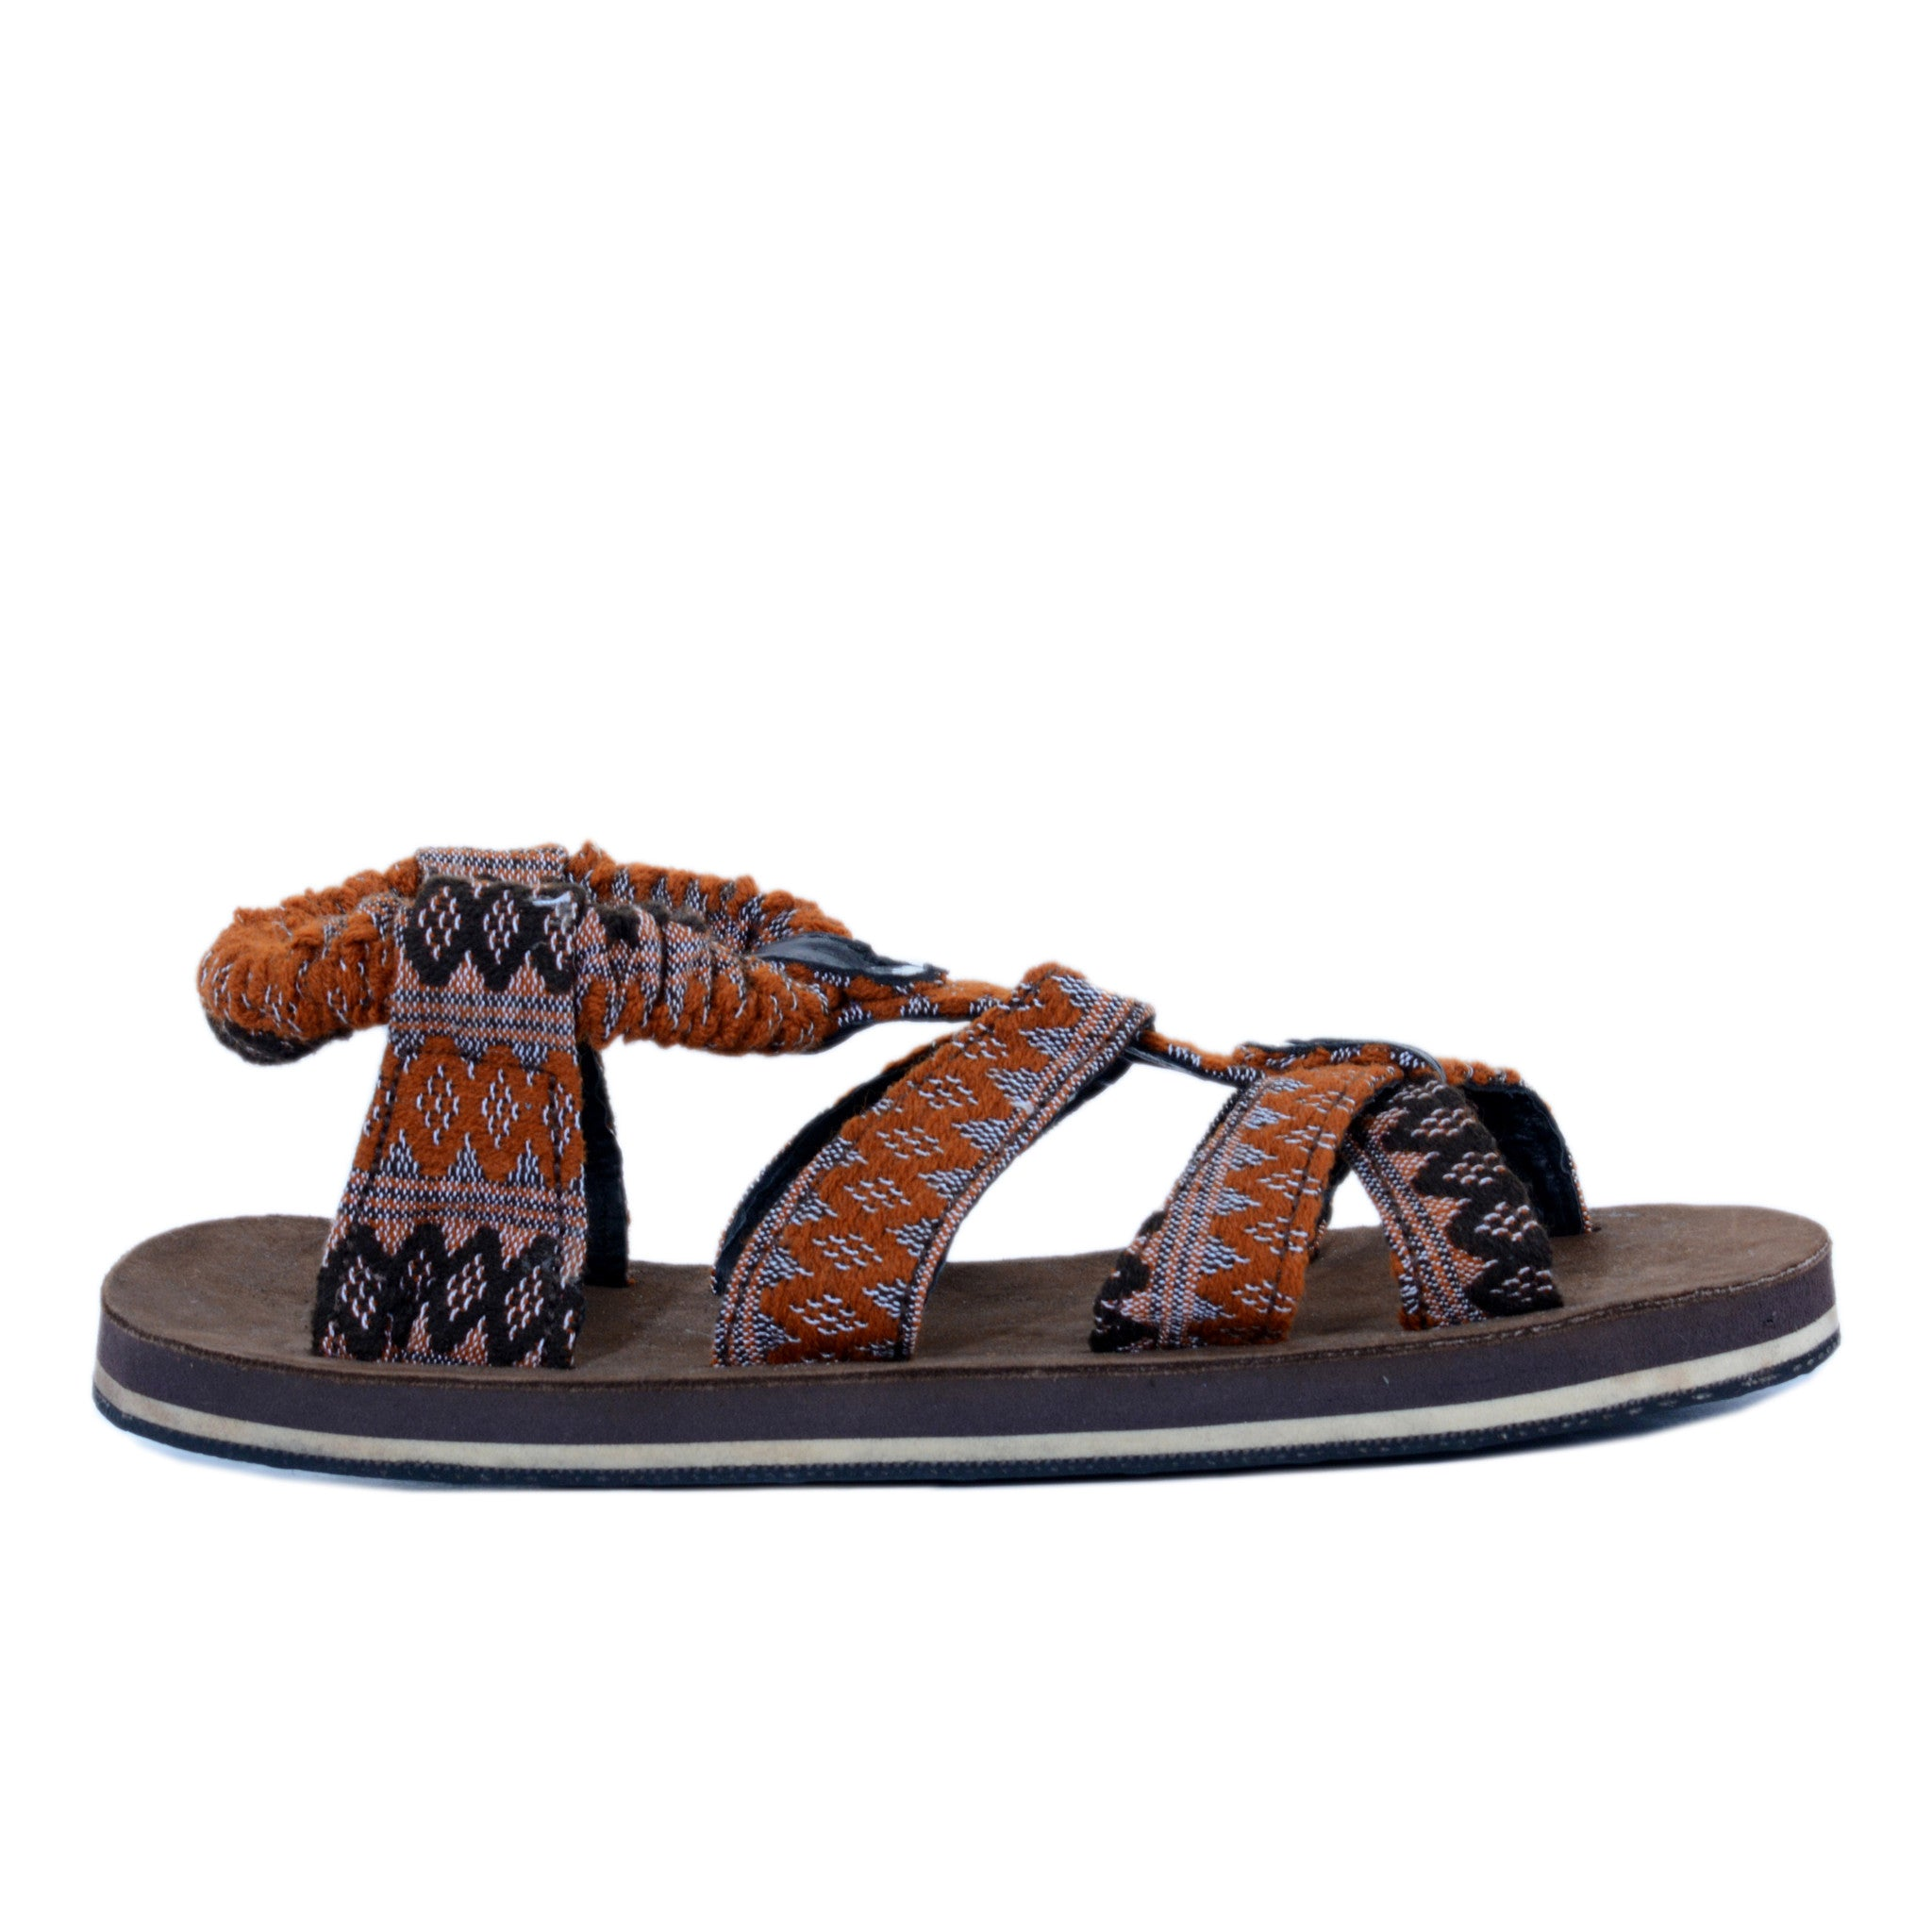 solerebels Brown loop FREEDOM wyld Sandals